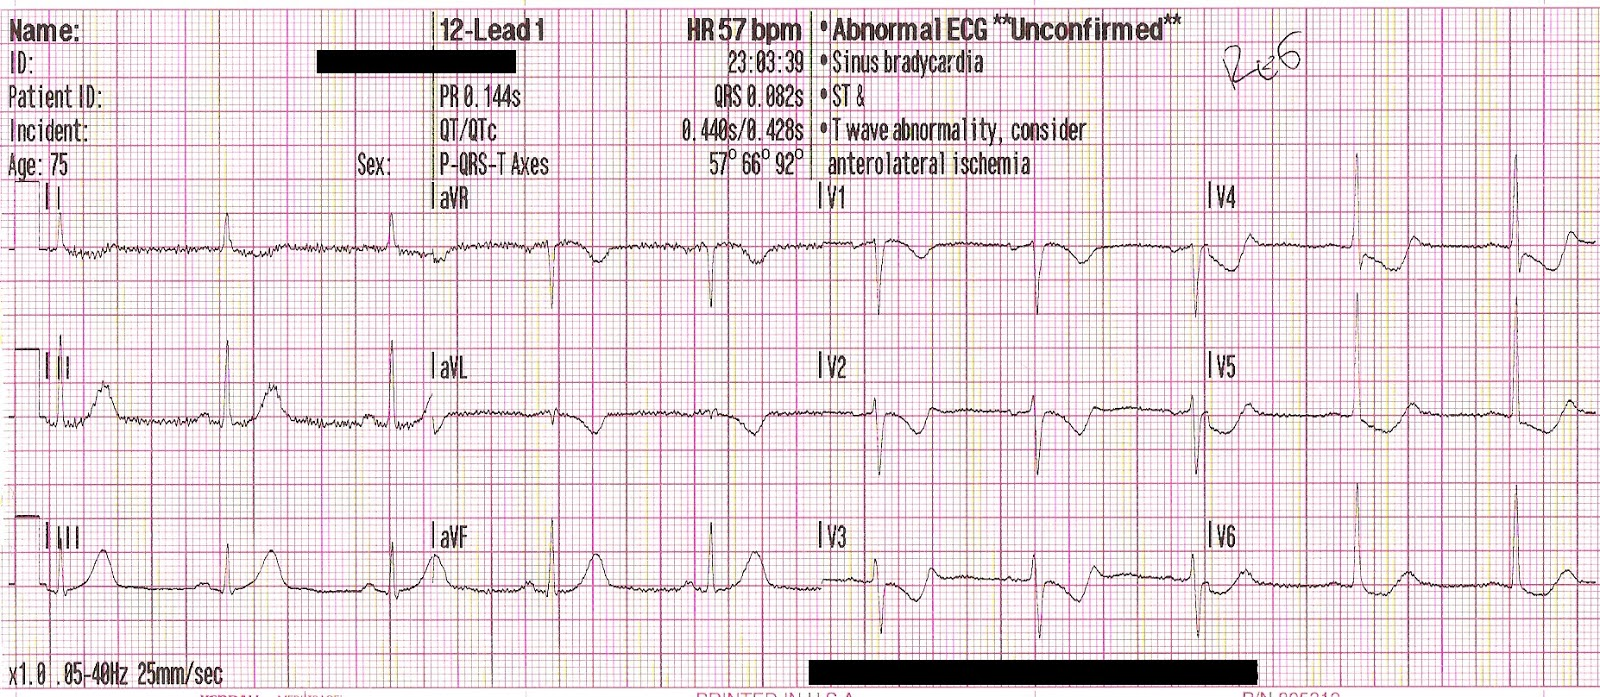 Dr Smiths Ecg Blog Series Of Prehospital Ecgs Showing Reperfusion